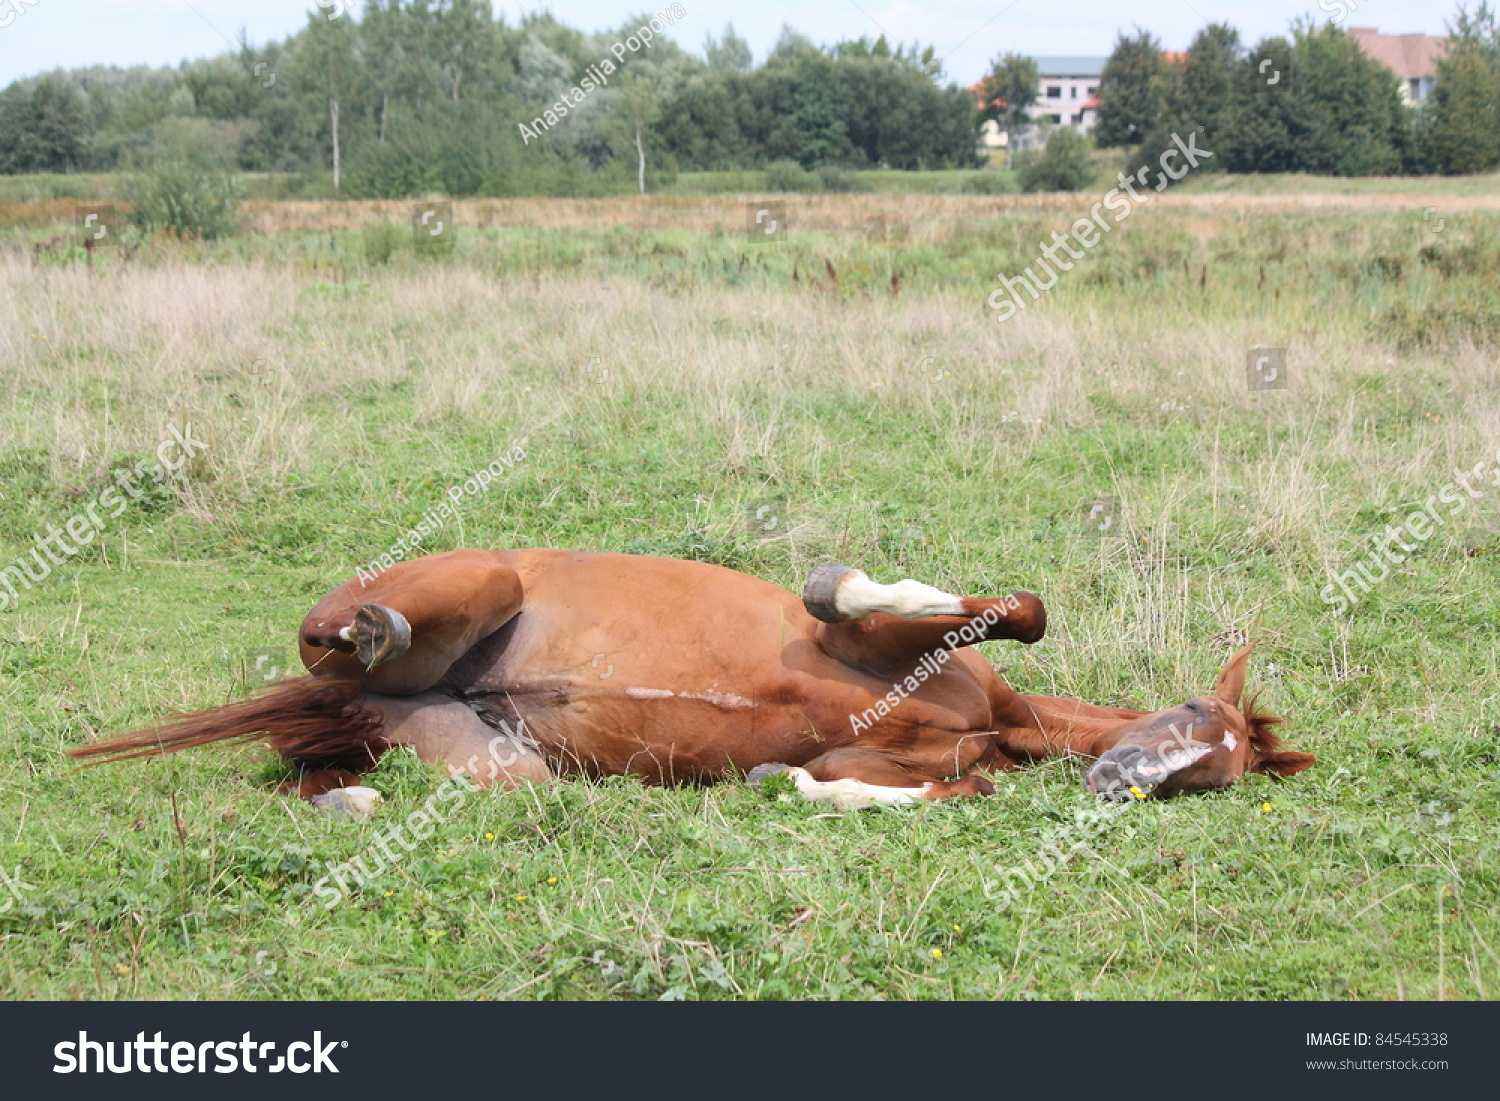 Brown horse rolling on the ground stock photo